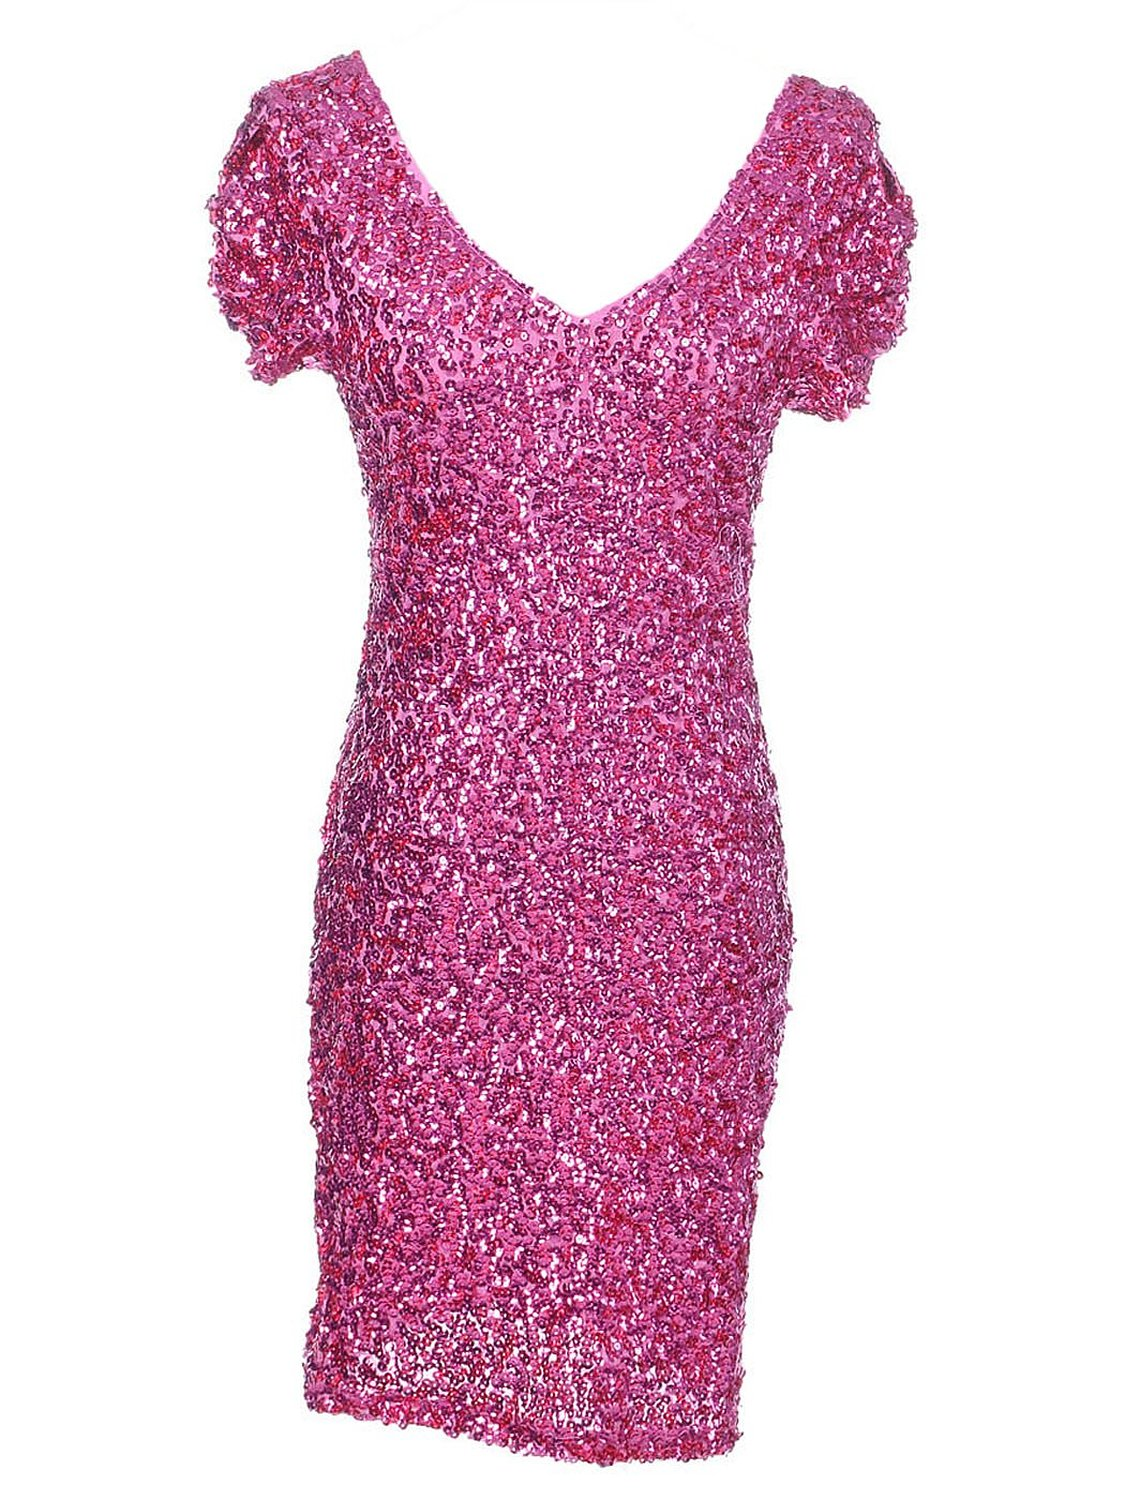 Kaci s/m fit barbie pink all over sequin shiny v neck ruffle mini s/s dress at amazon women's clothing store: